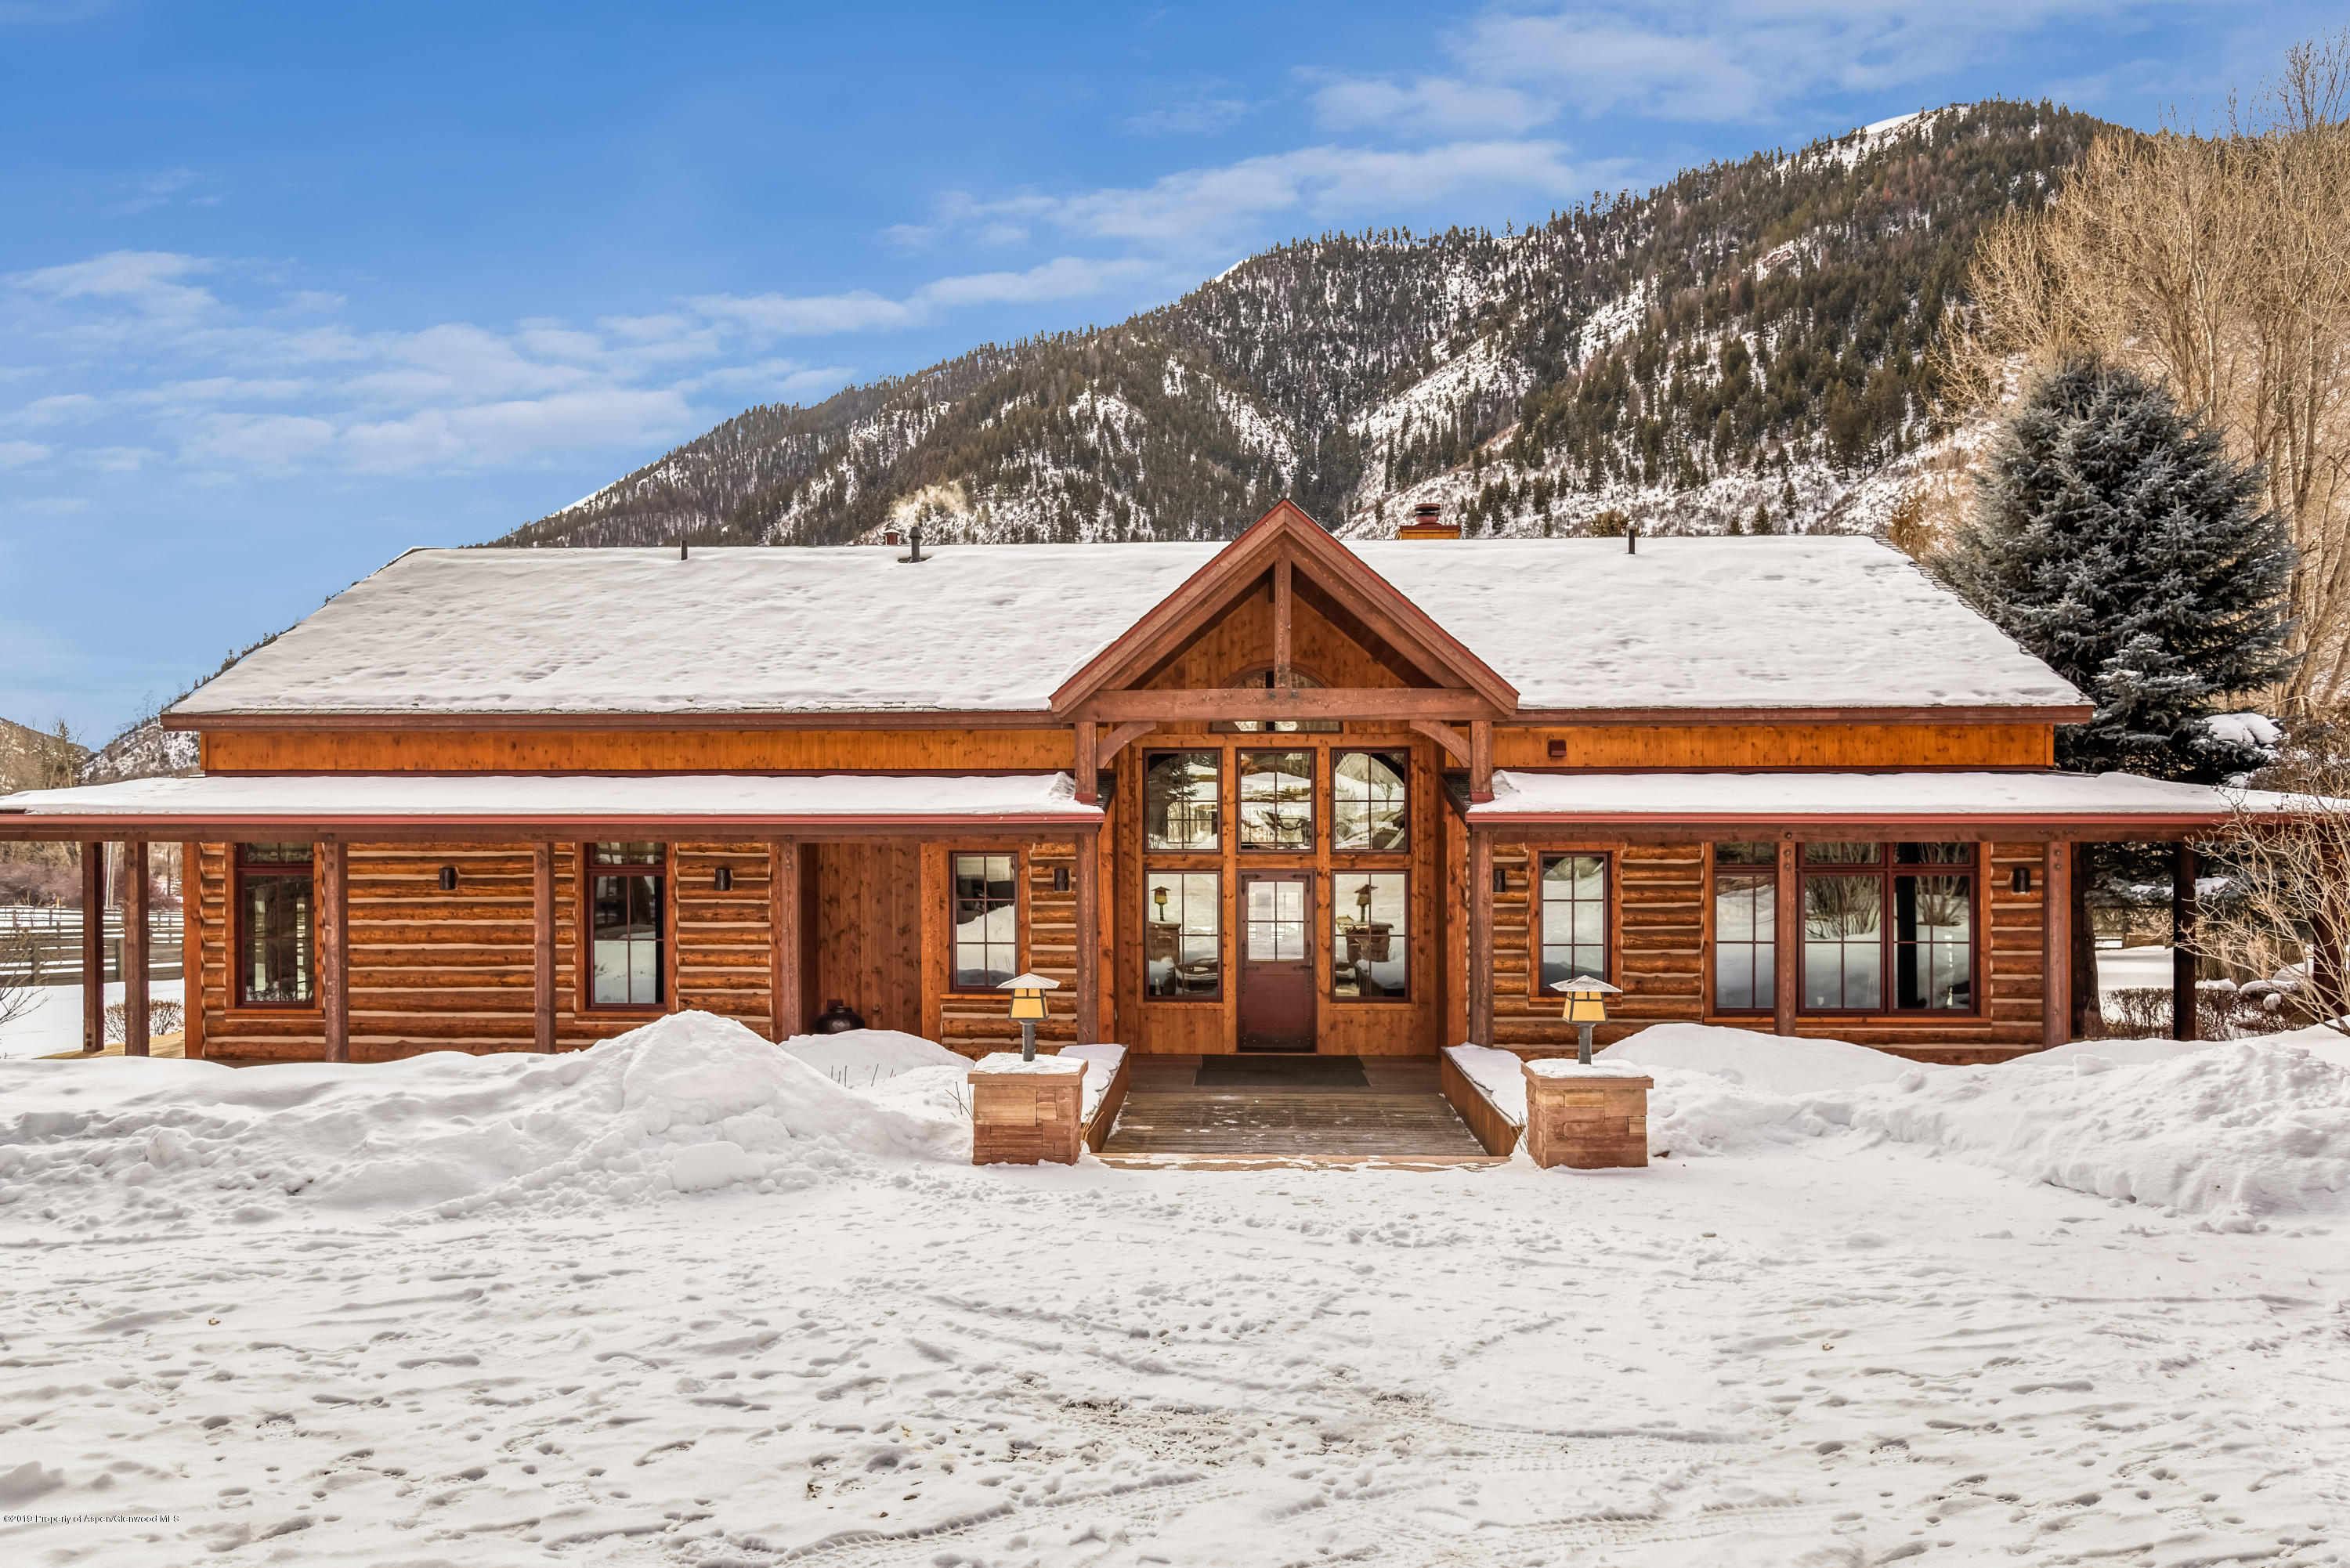 MLS# 135595 - 76 - 50 E River Ranch Road, Snowmass, CO 81654